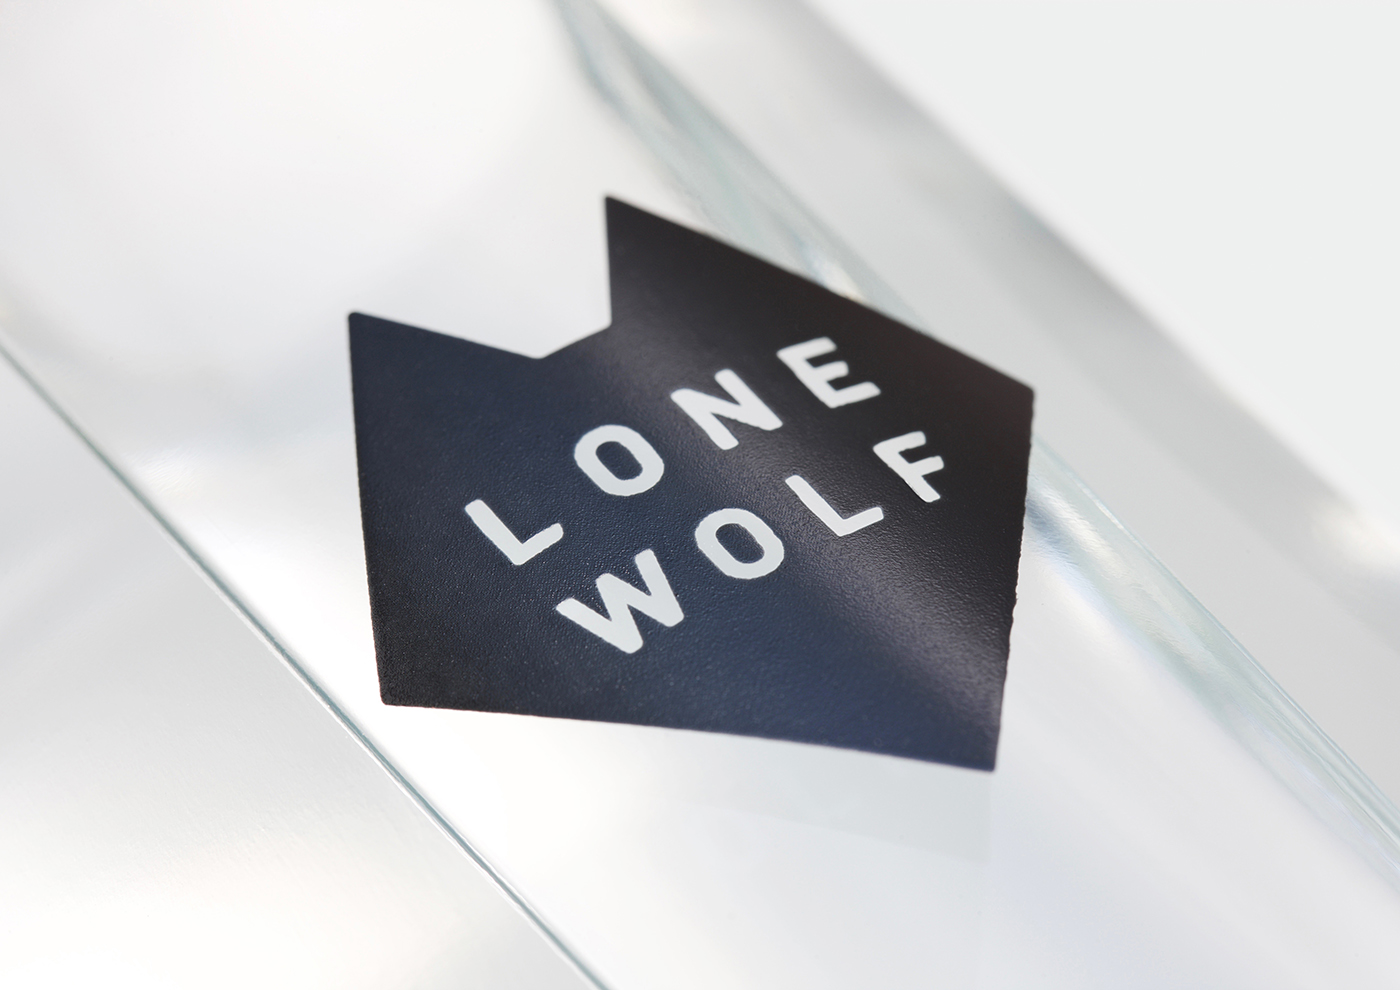 Logo and packaging design by London-based B&B Studio for Brewdog's craft spirits range Lone Wolf